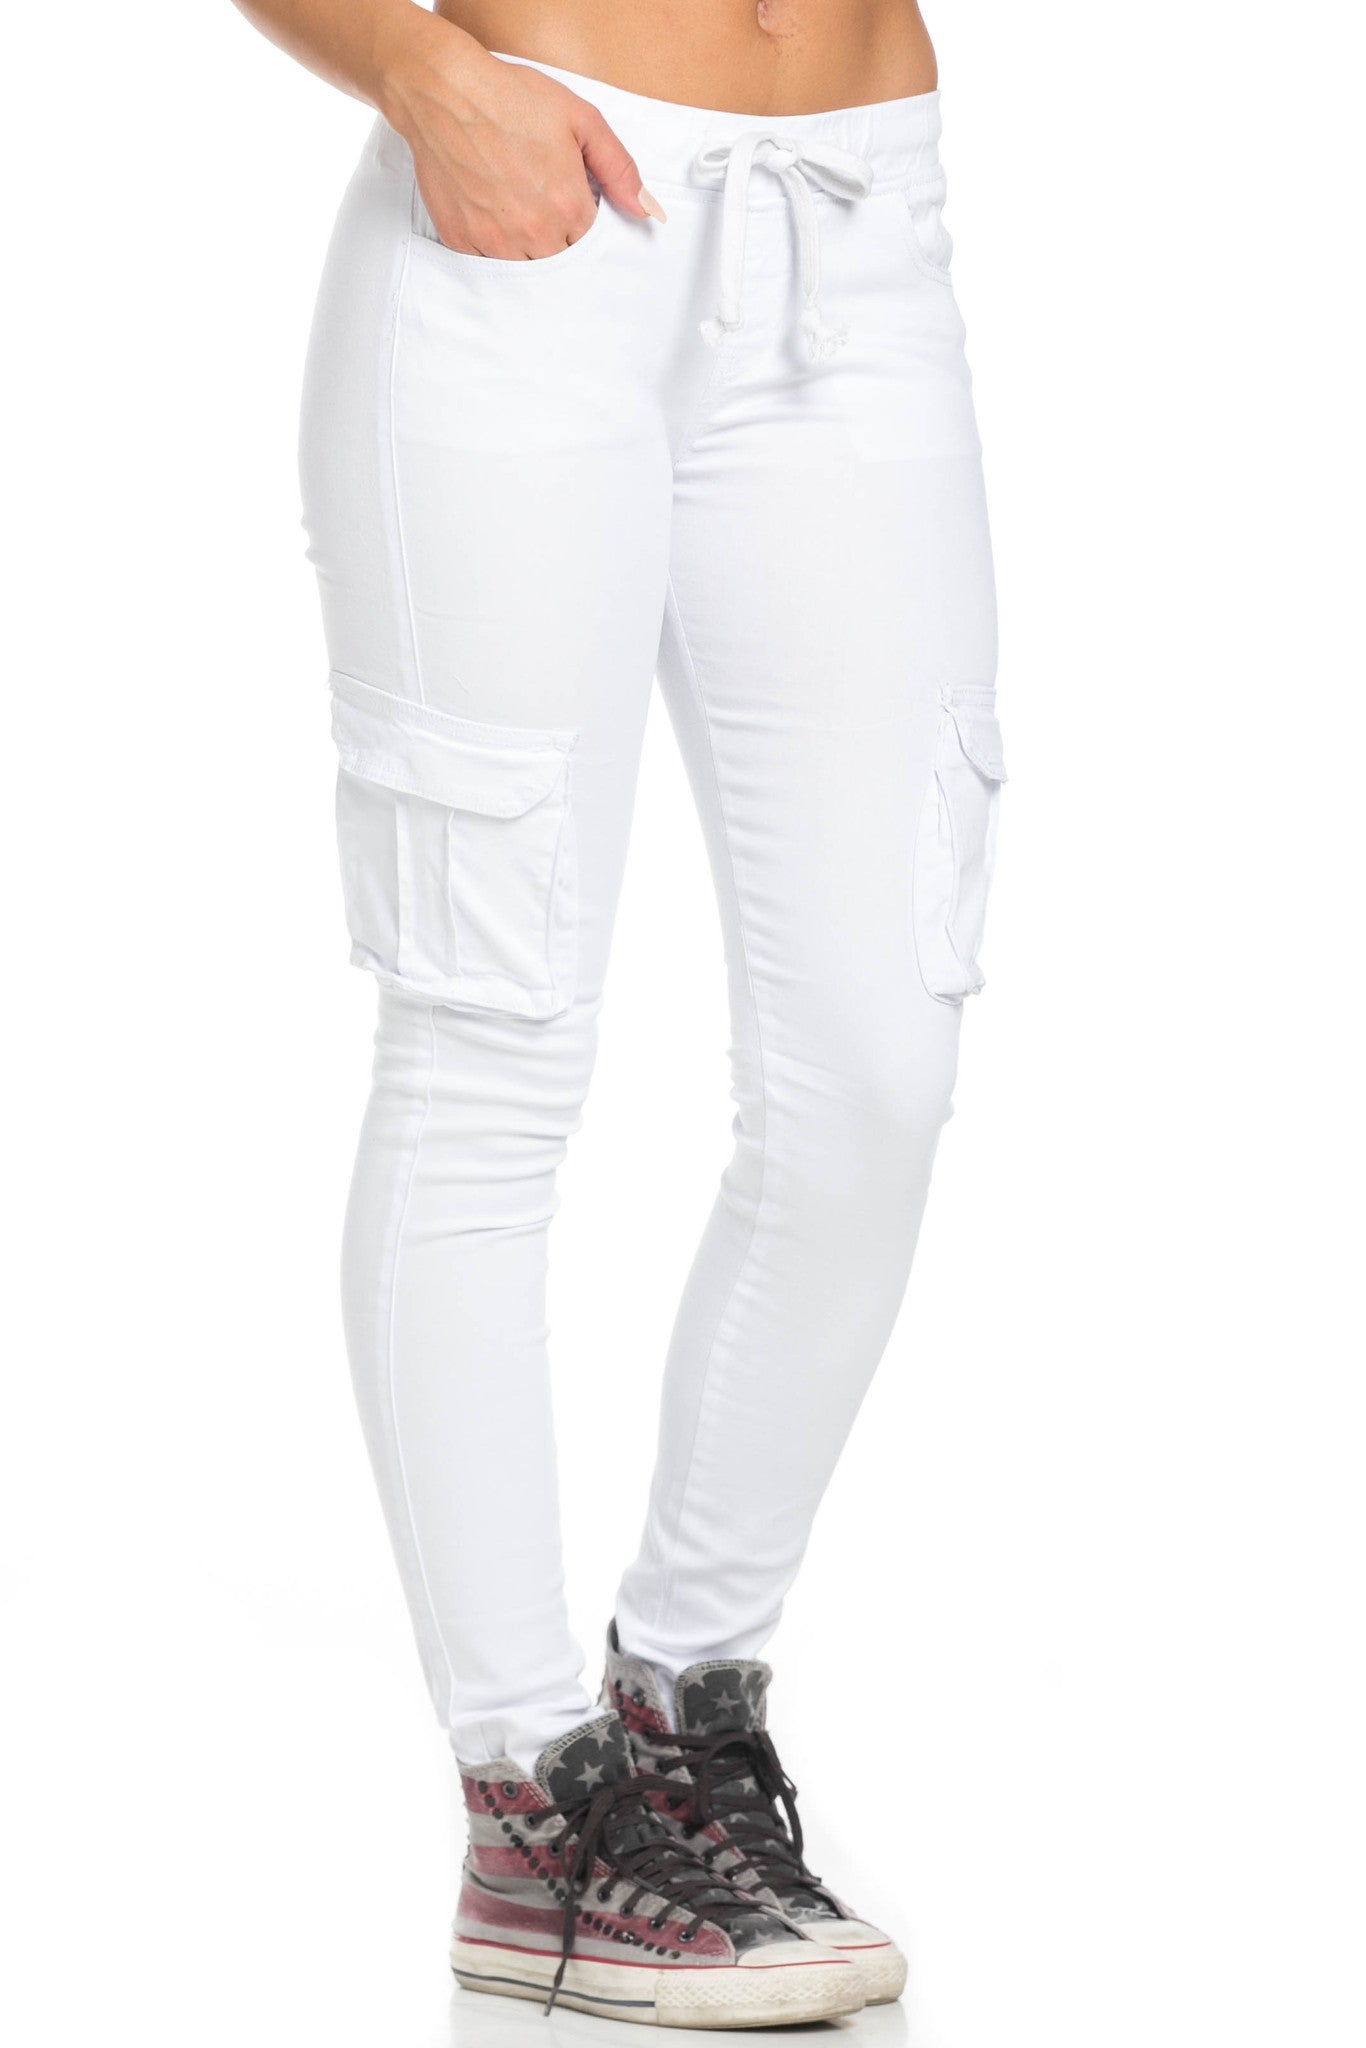 Mid Rise Skinny White Cargo Pants - Pants - My Yuccie - 6